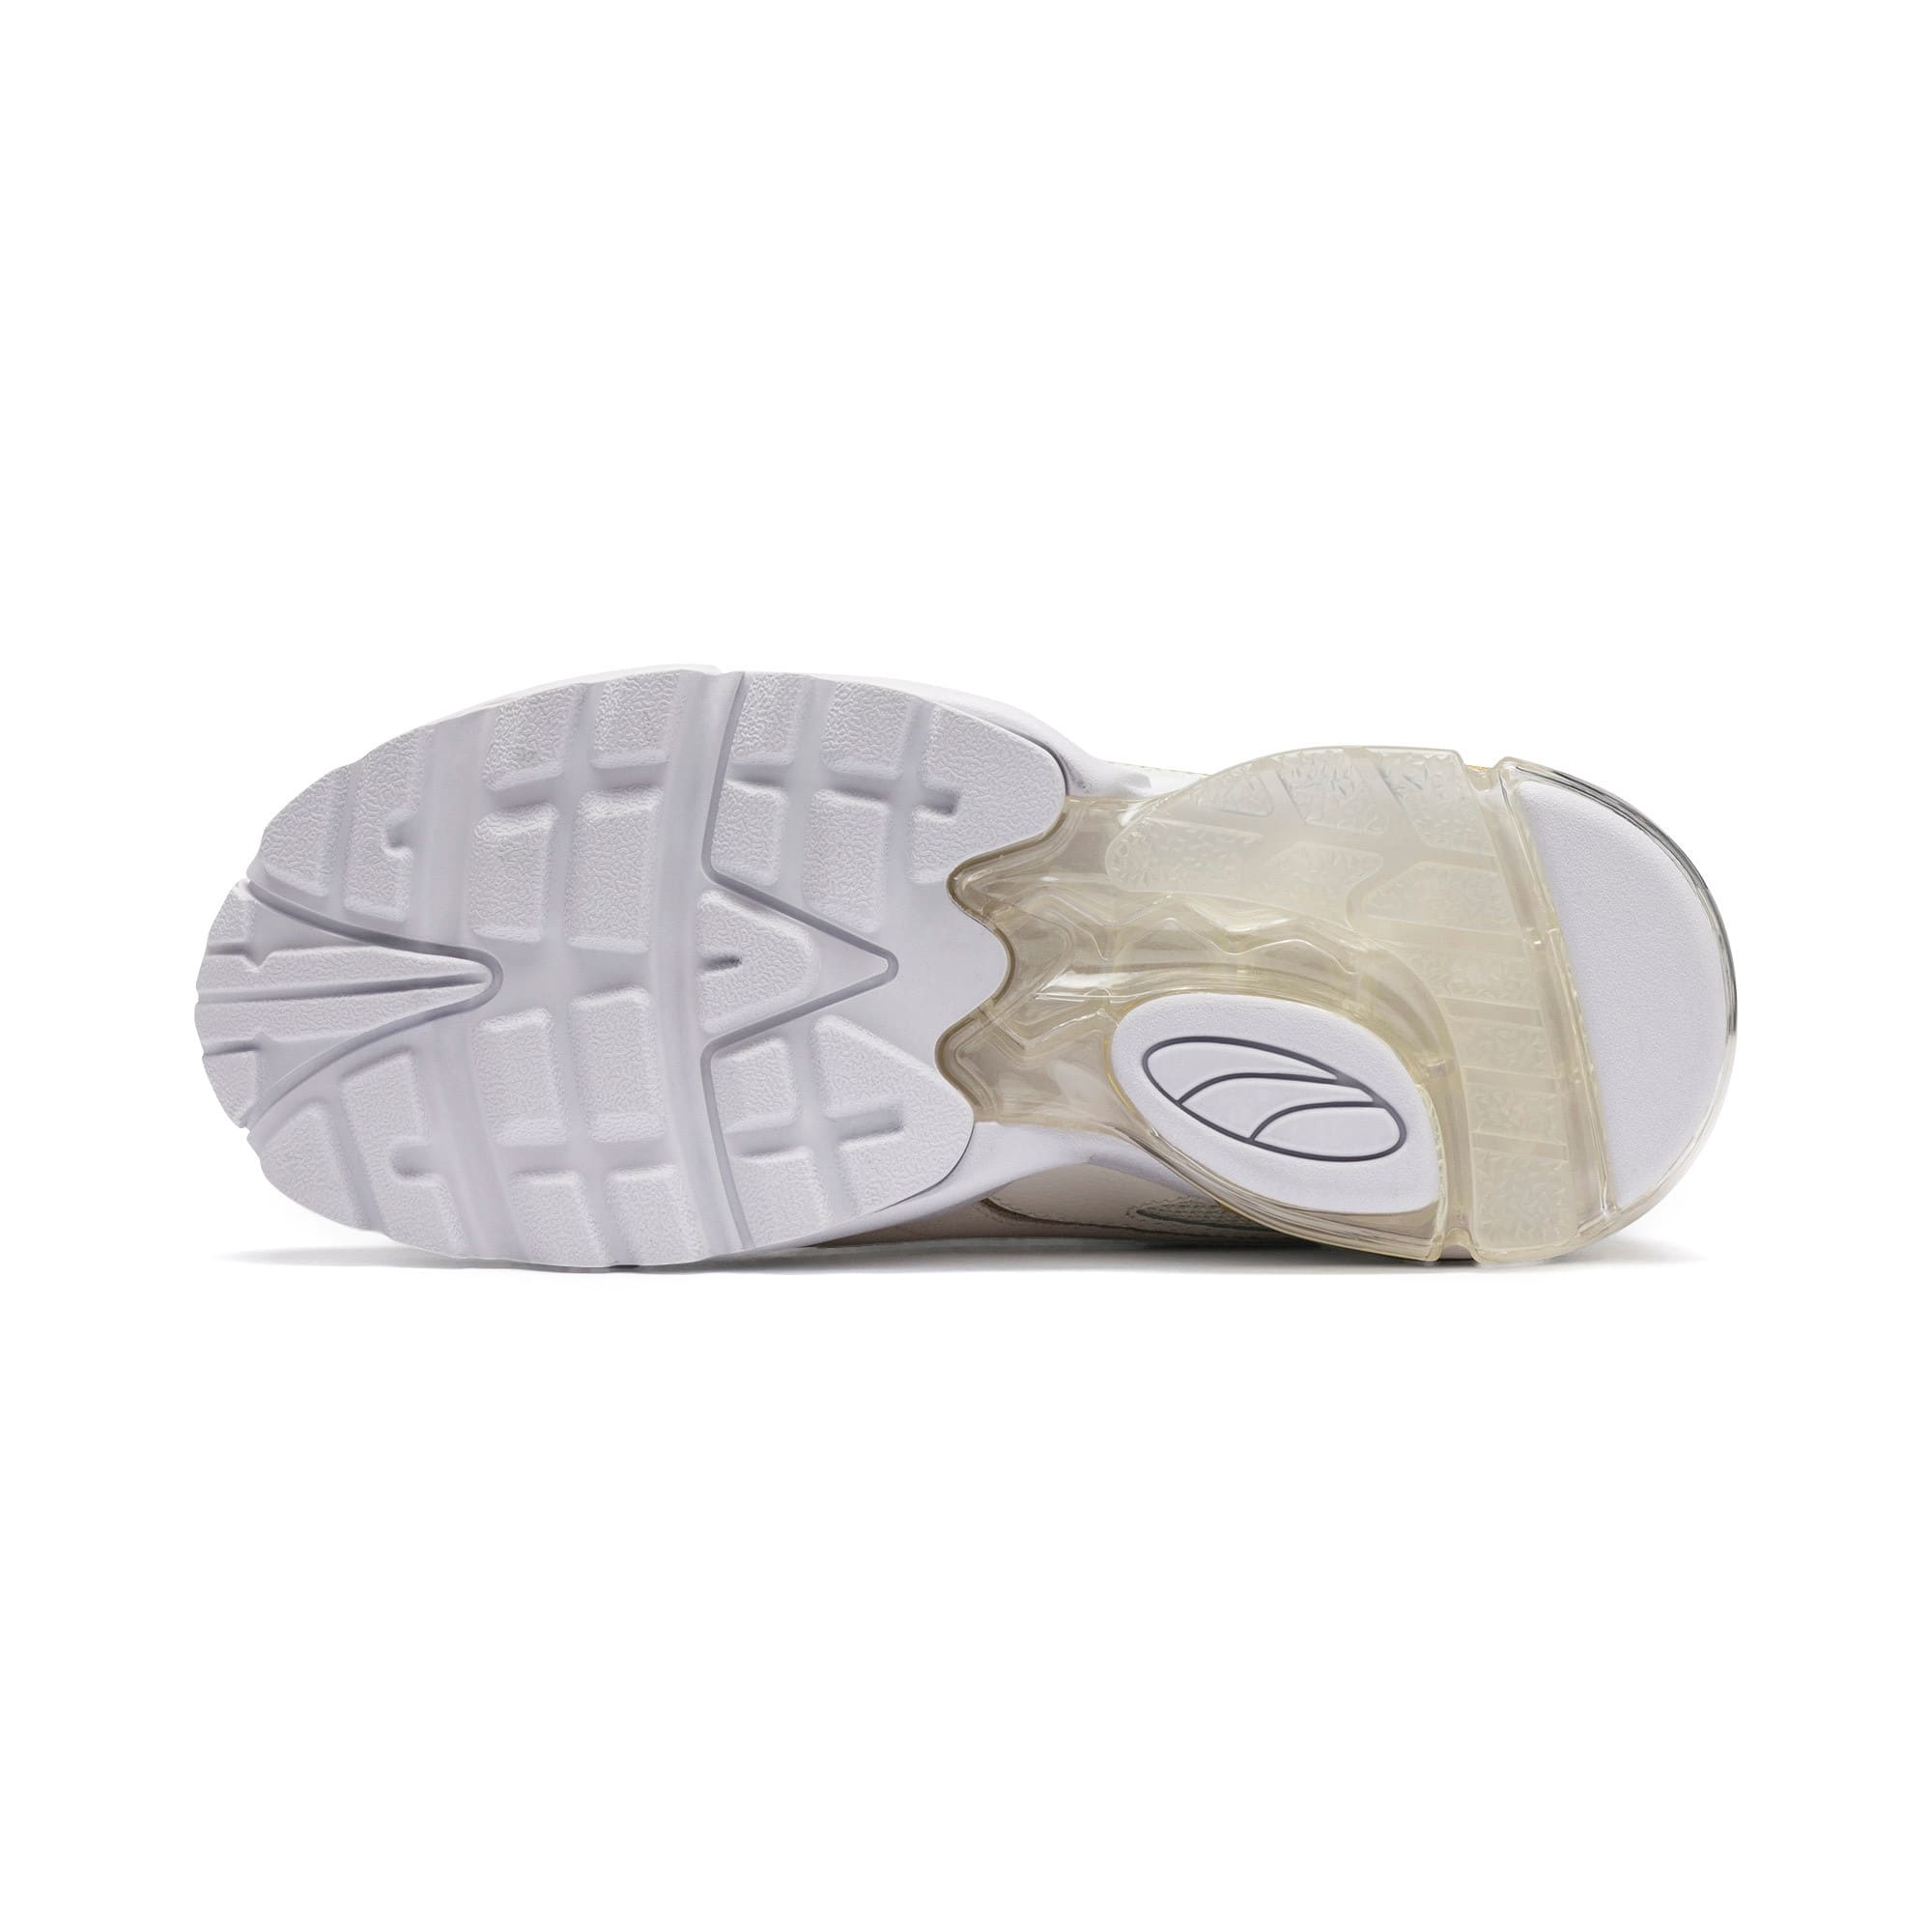 Thumbnail 5 of CELL Stellar Soft sportschoenen voor dames, Puma White-Puma Team Gold, medium